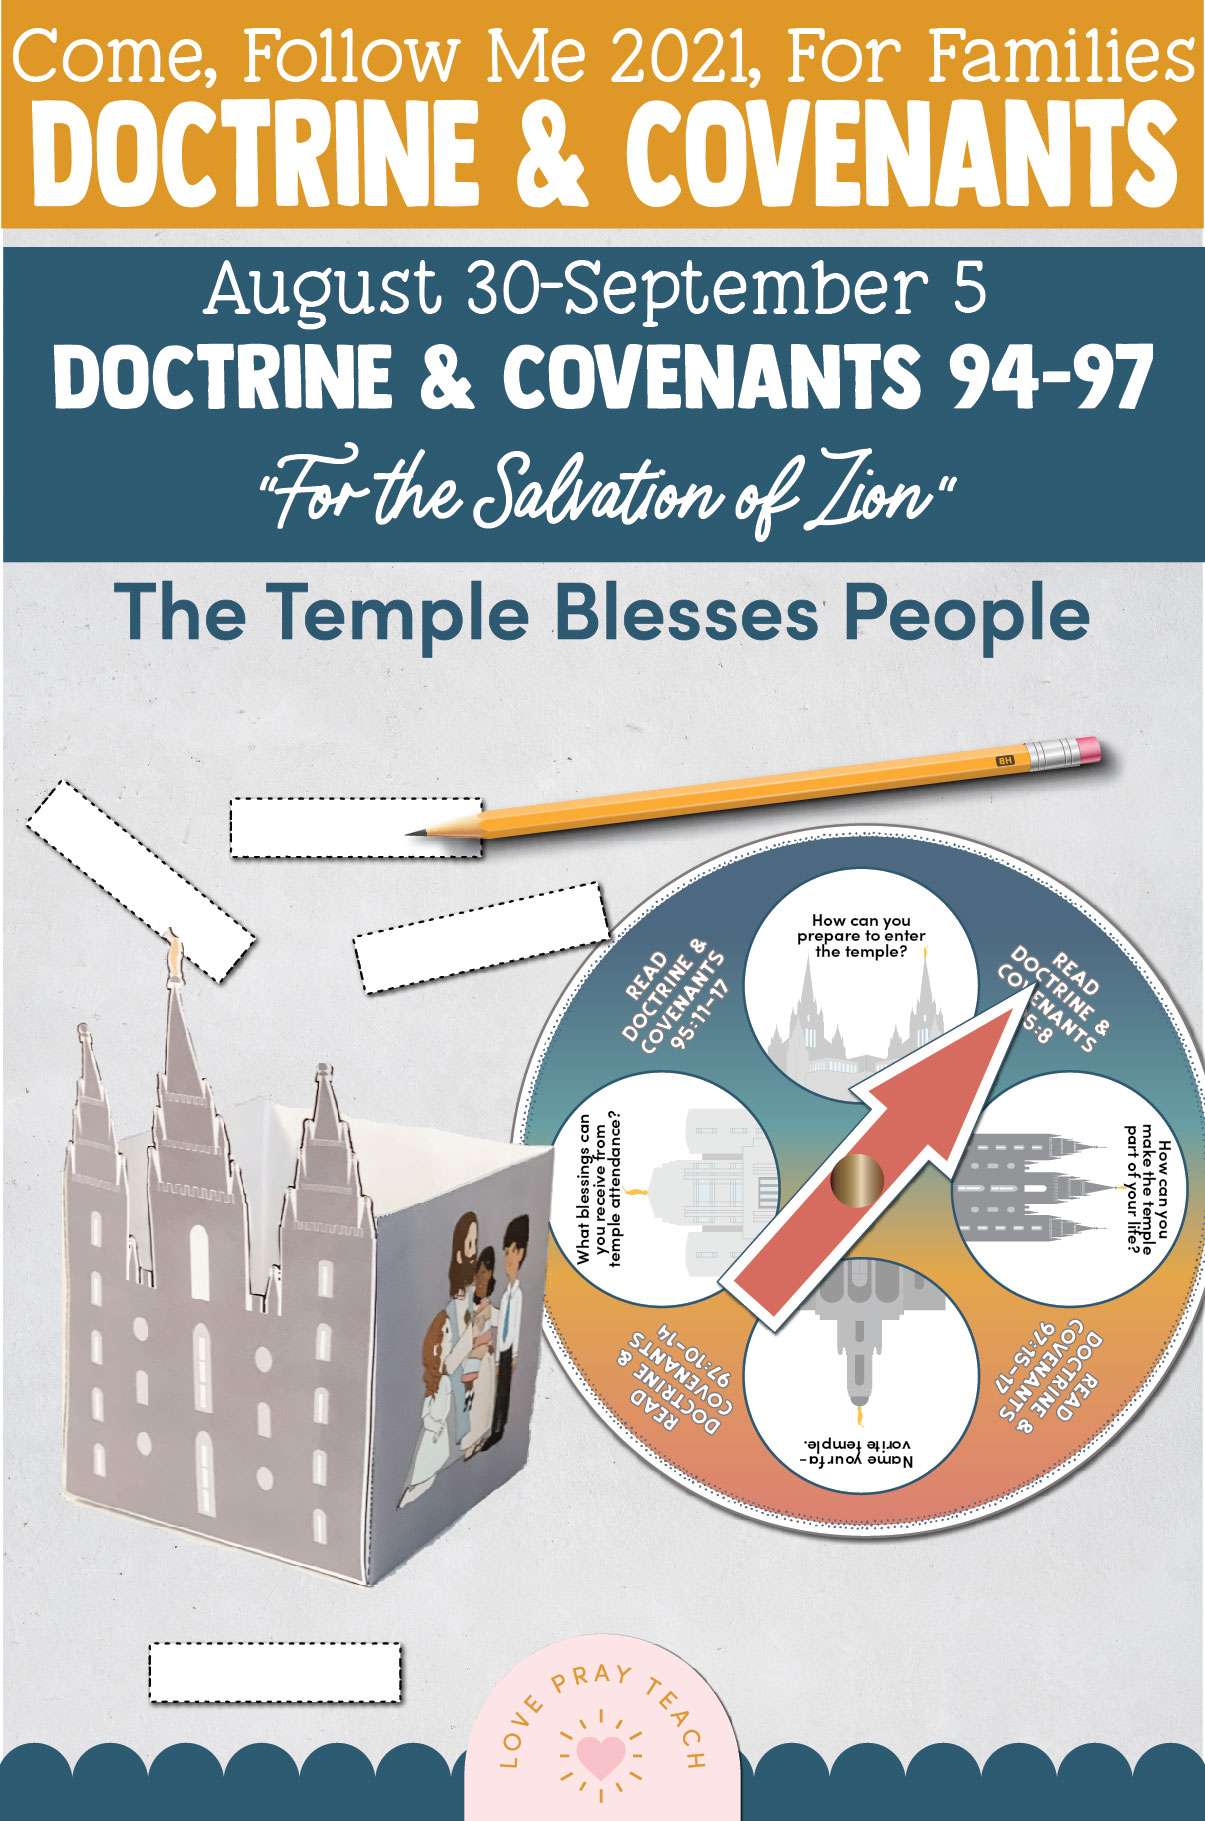 """Come, Follow Me—For Individuals and Families: Doctrine And Covenants 2021, September Week 1 Doctrine and Covenants 94-97: August 30-September 5,""""For the Salvation of Zion"""""""